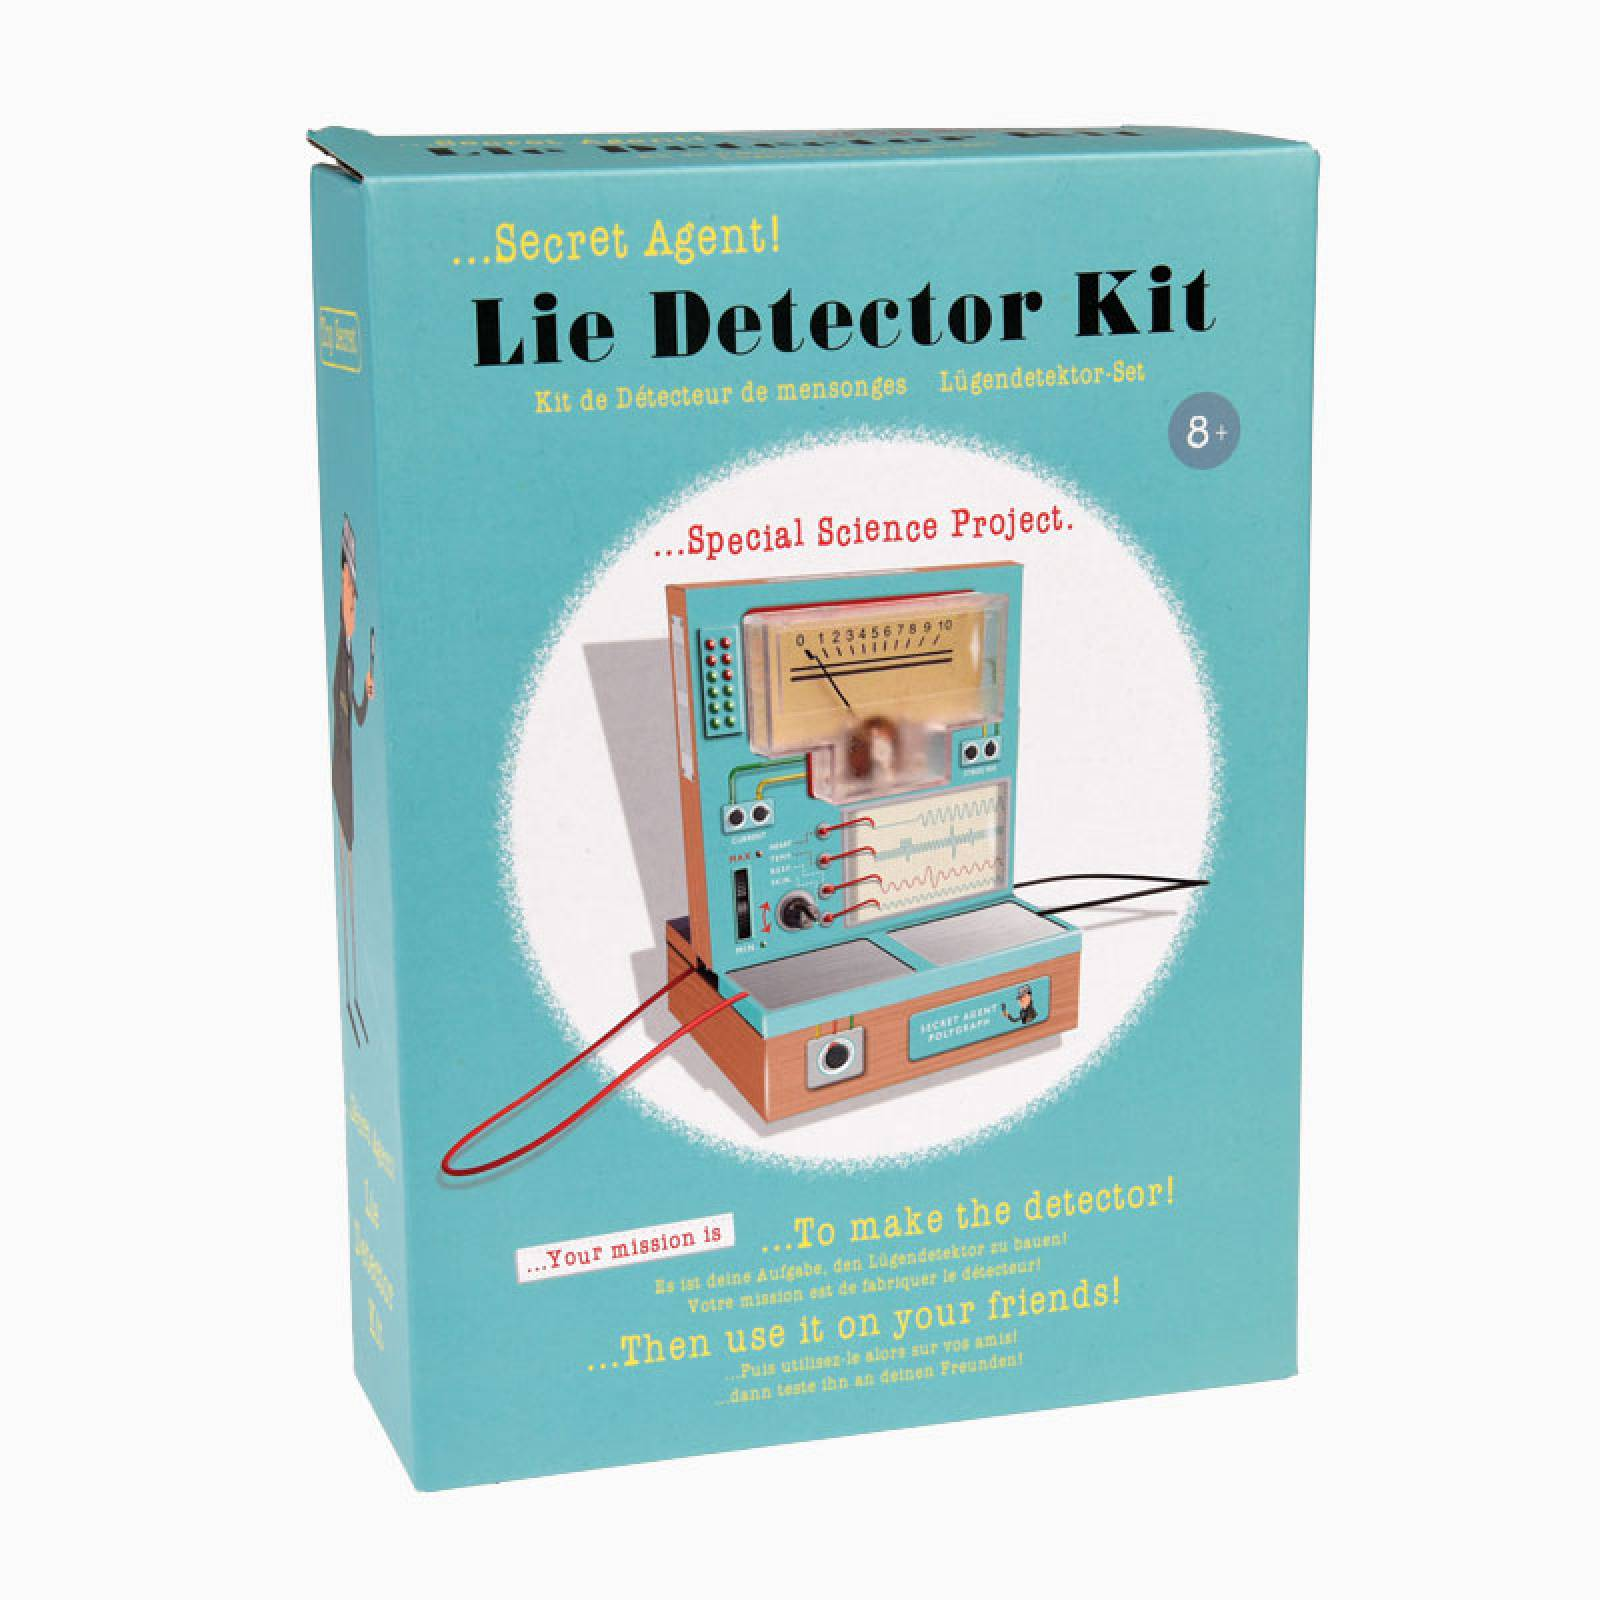 Secret Agent Lie Detector Kit 8+